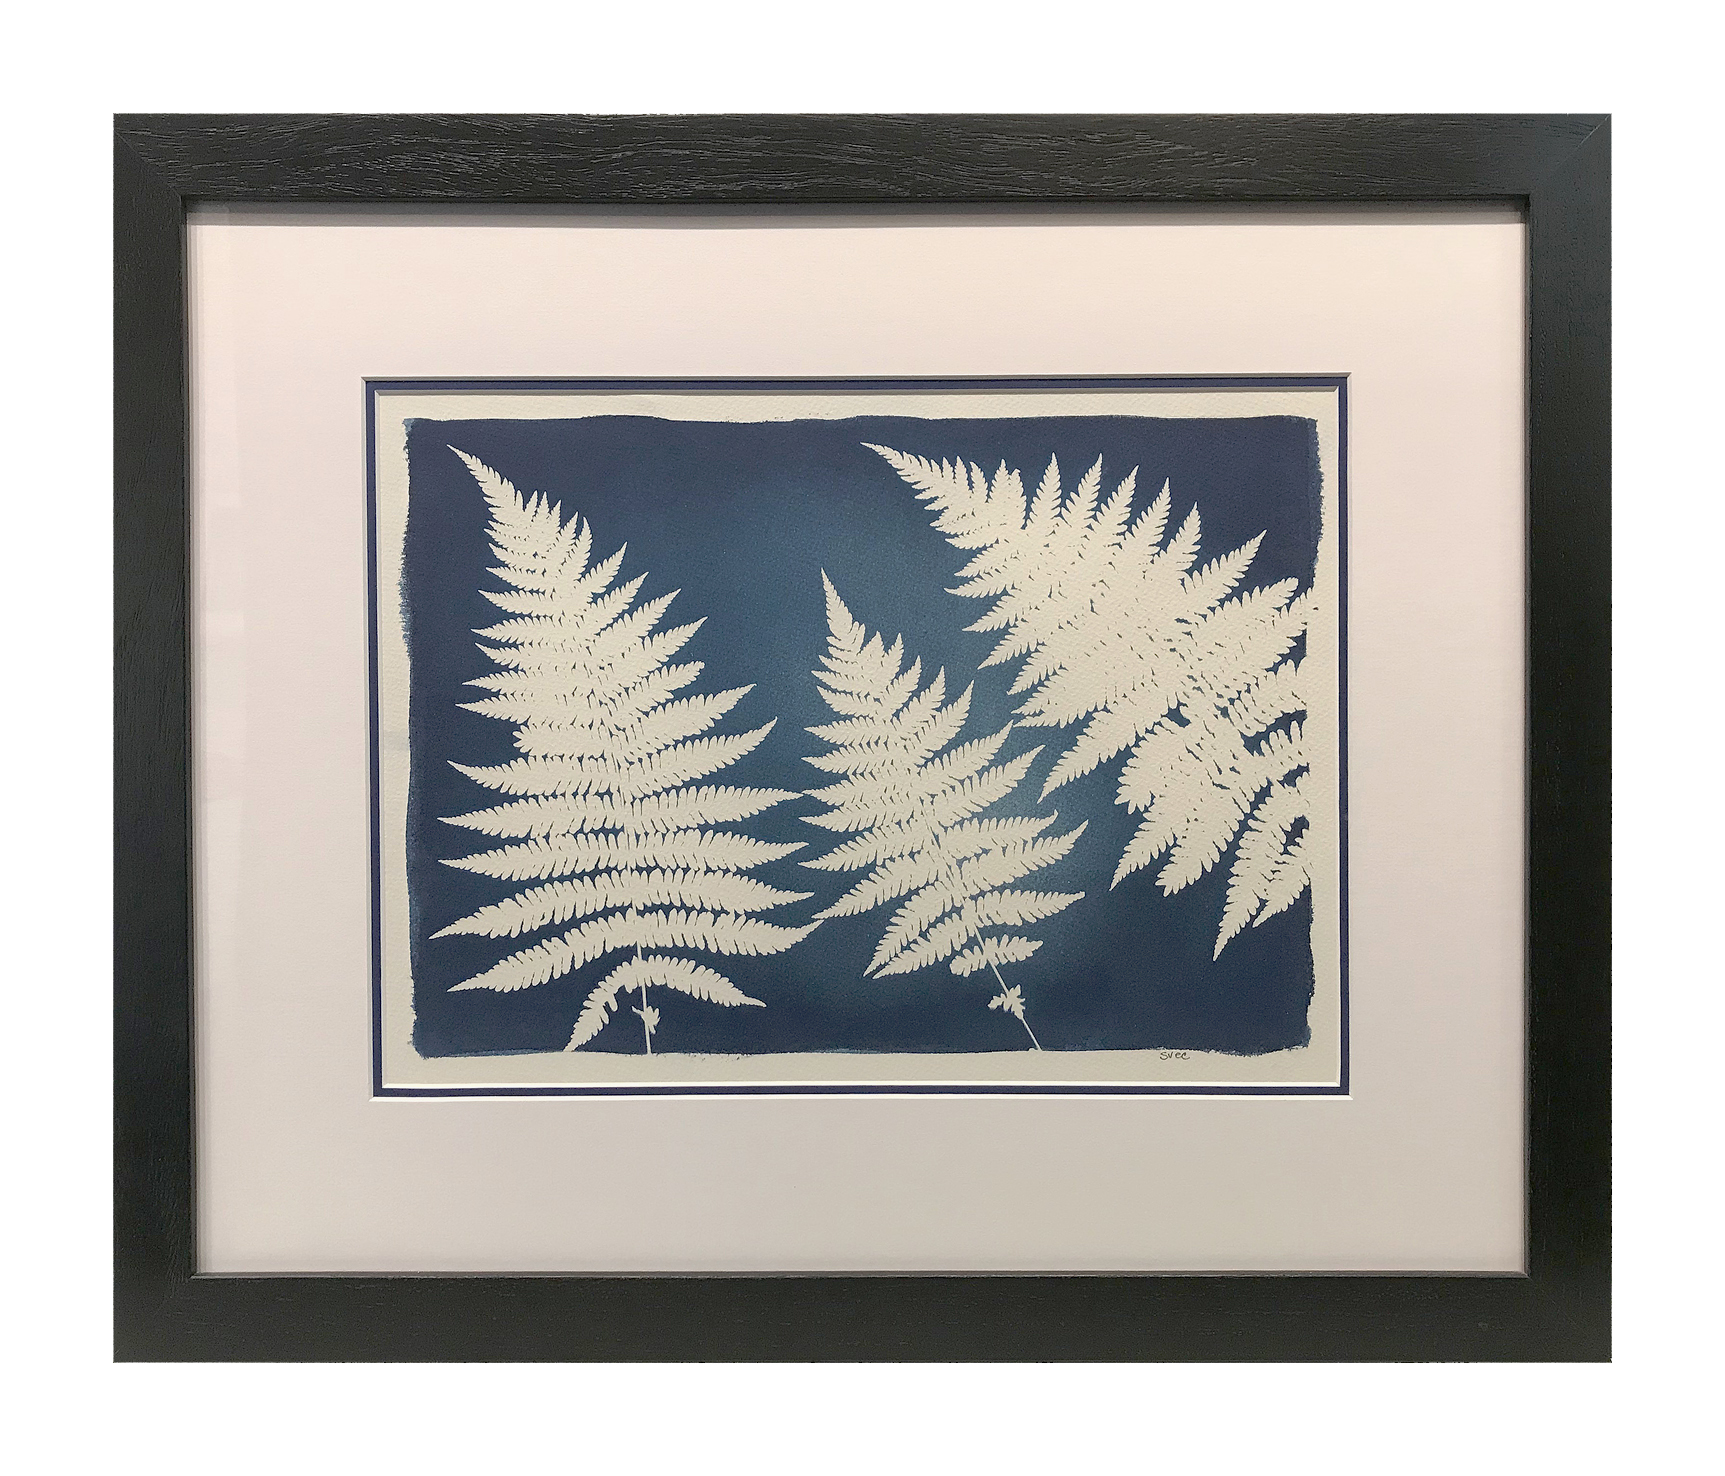 This cyanotype print is framed in a simple black wooden frame with a double mat.  The inner blue mat matches the blue of the print.